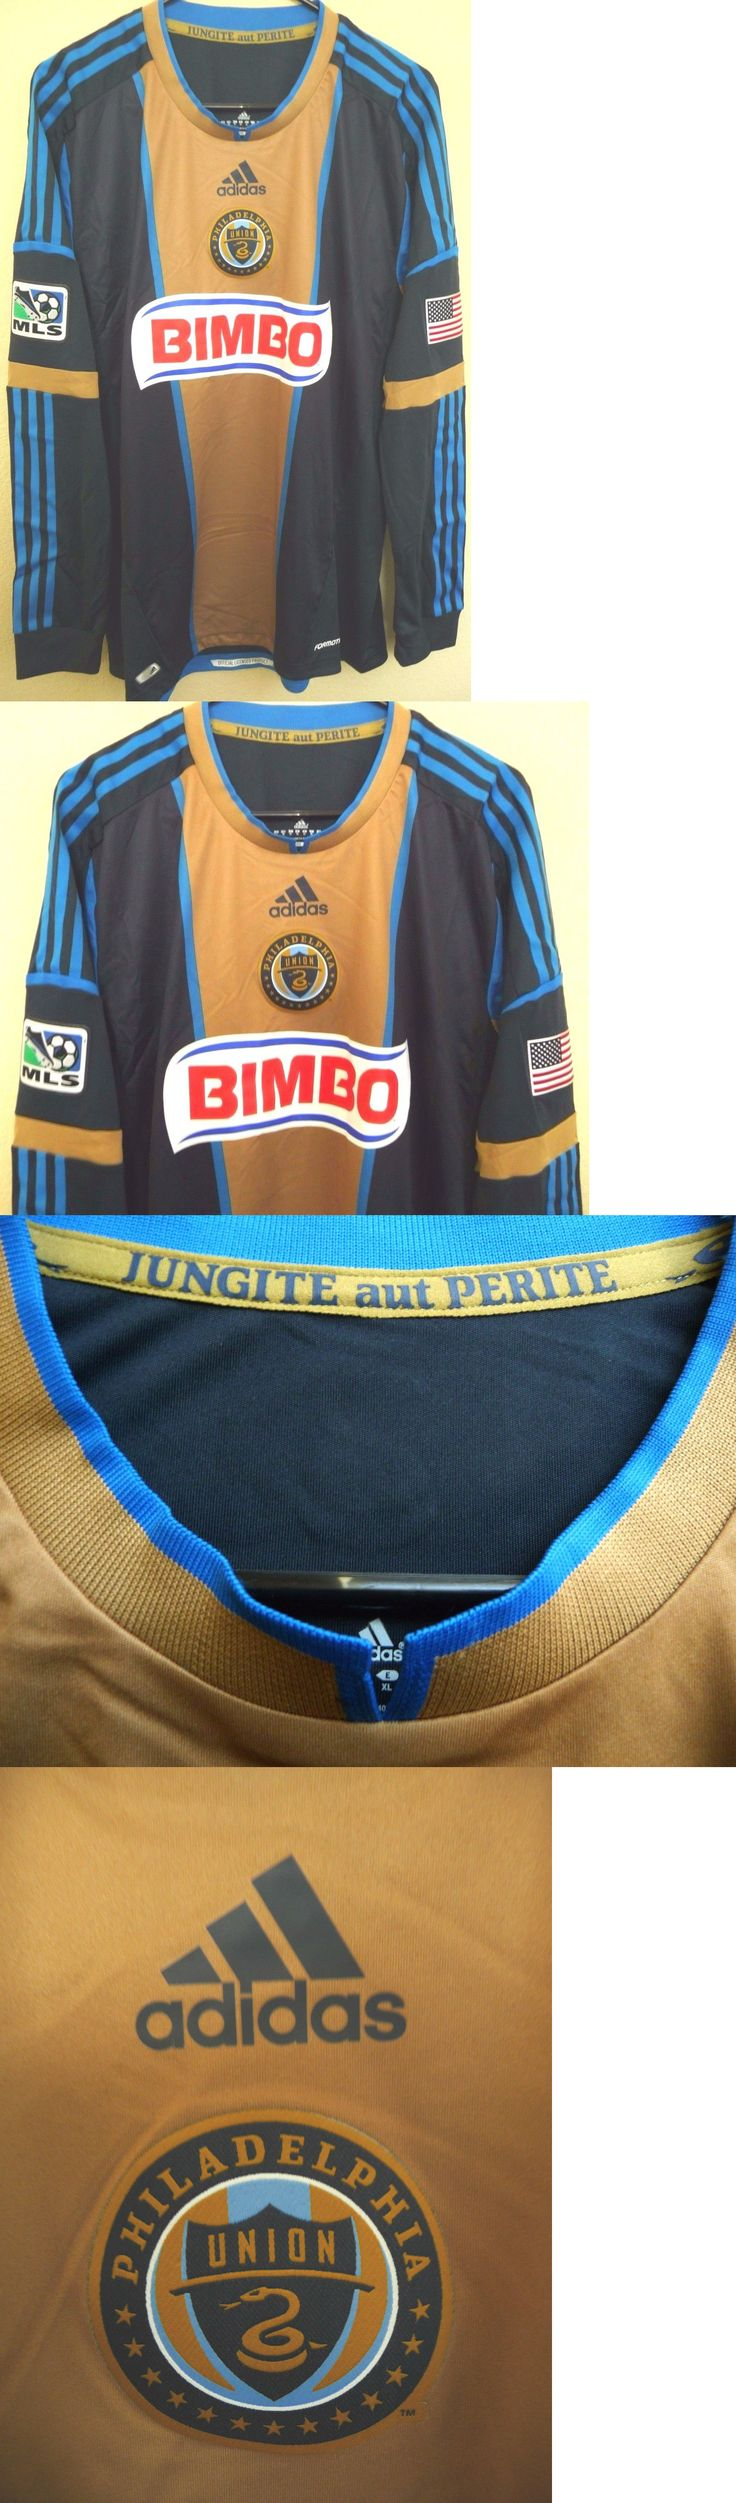 Soccer-MLS 2888: Mls Adidas Philadelphia Union 2013 Authentic Long Sleeve Soccer Jersey Xl New -> BUY IT NOW ONLY: $74.95 on eBay!